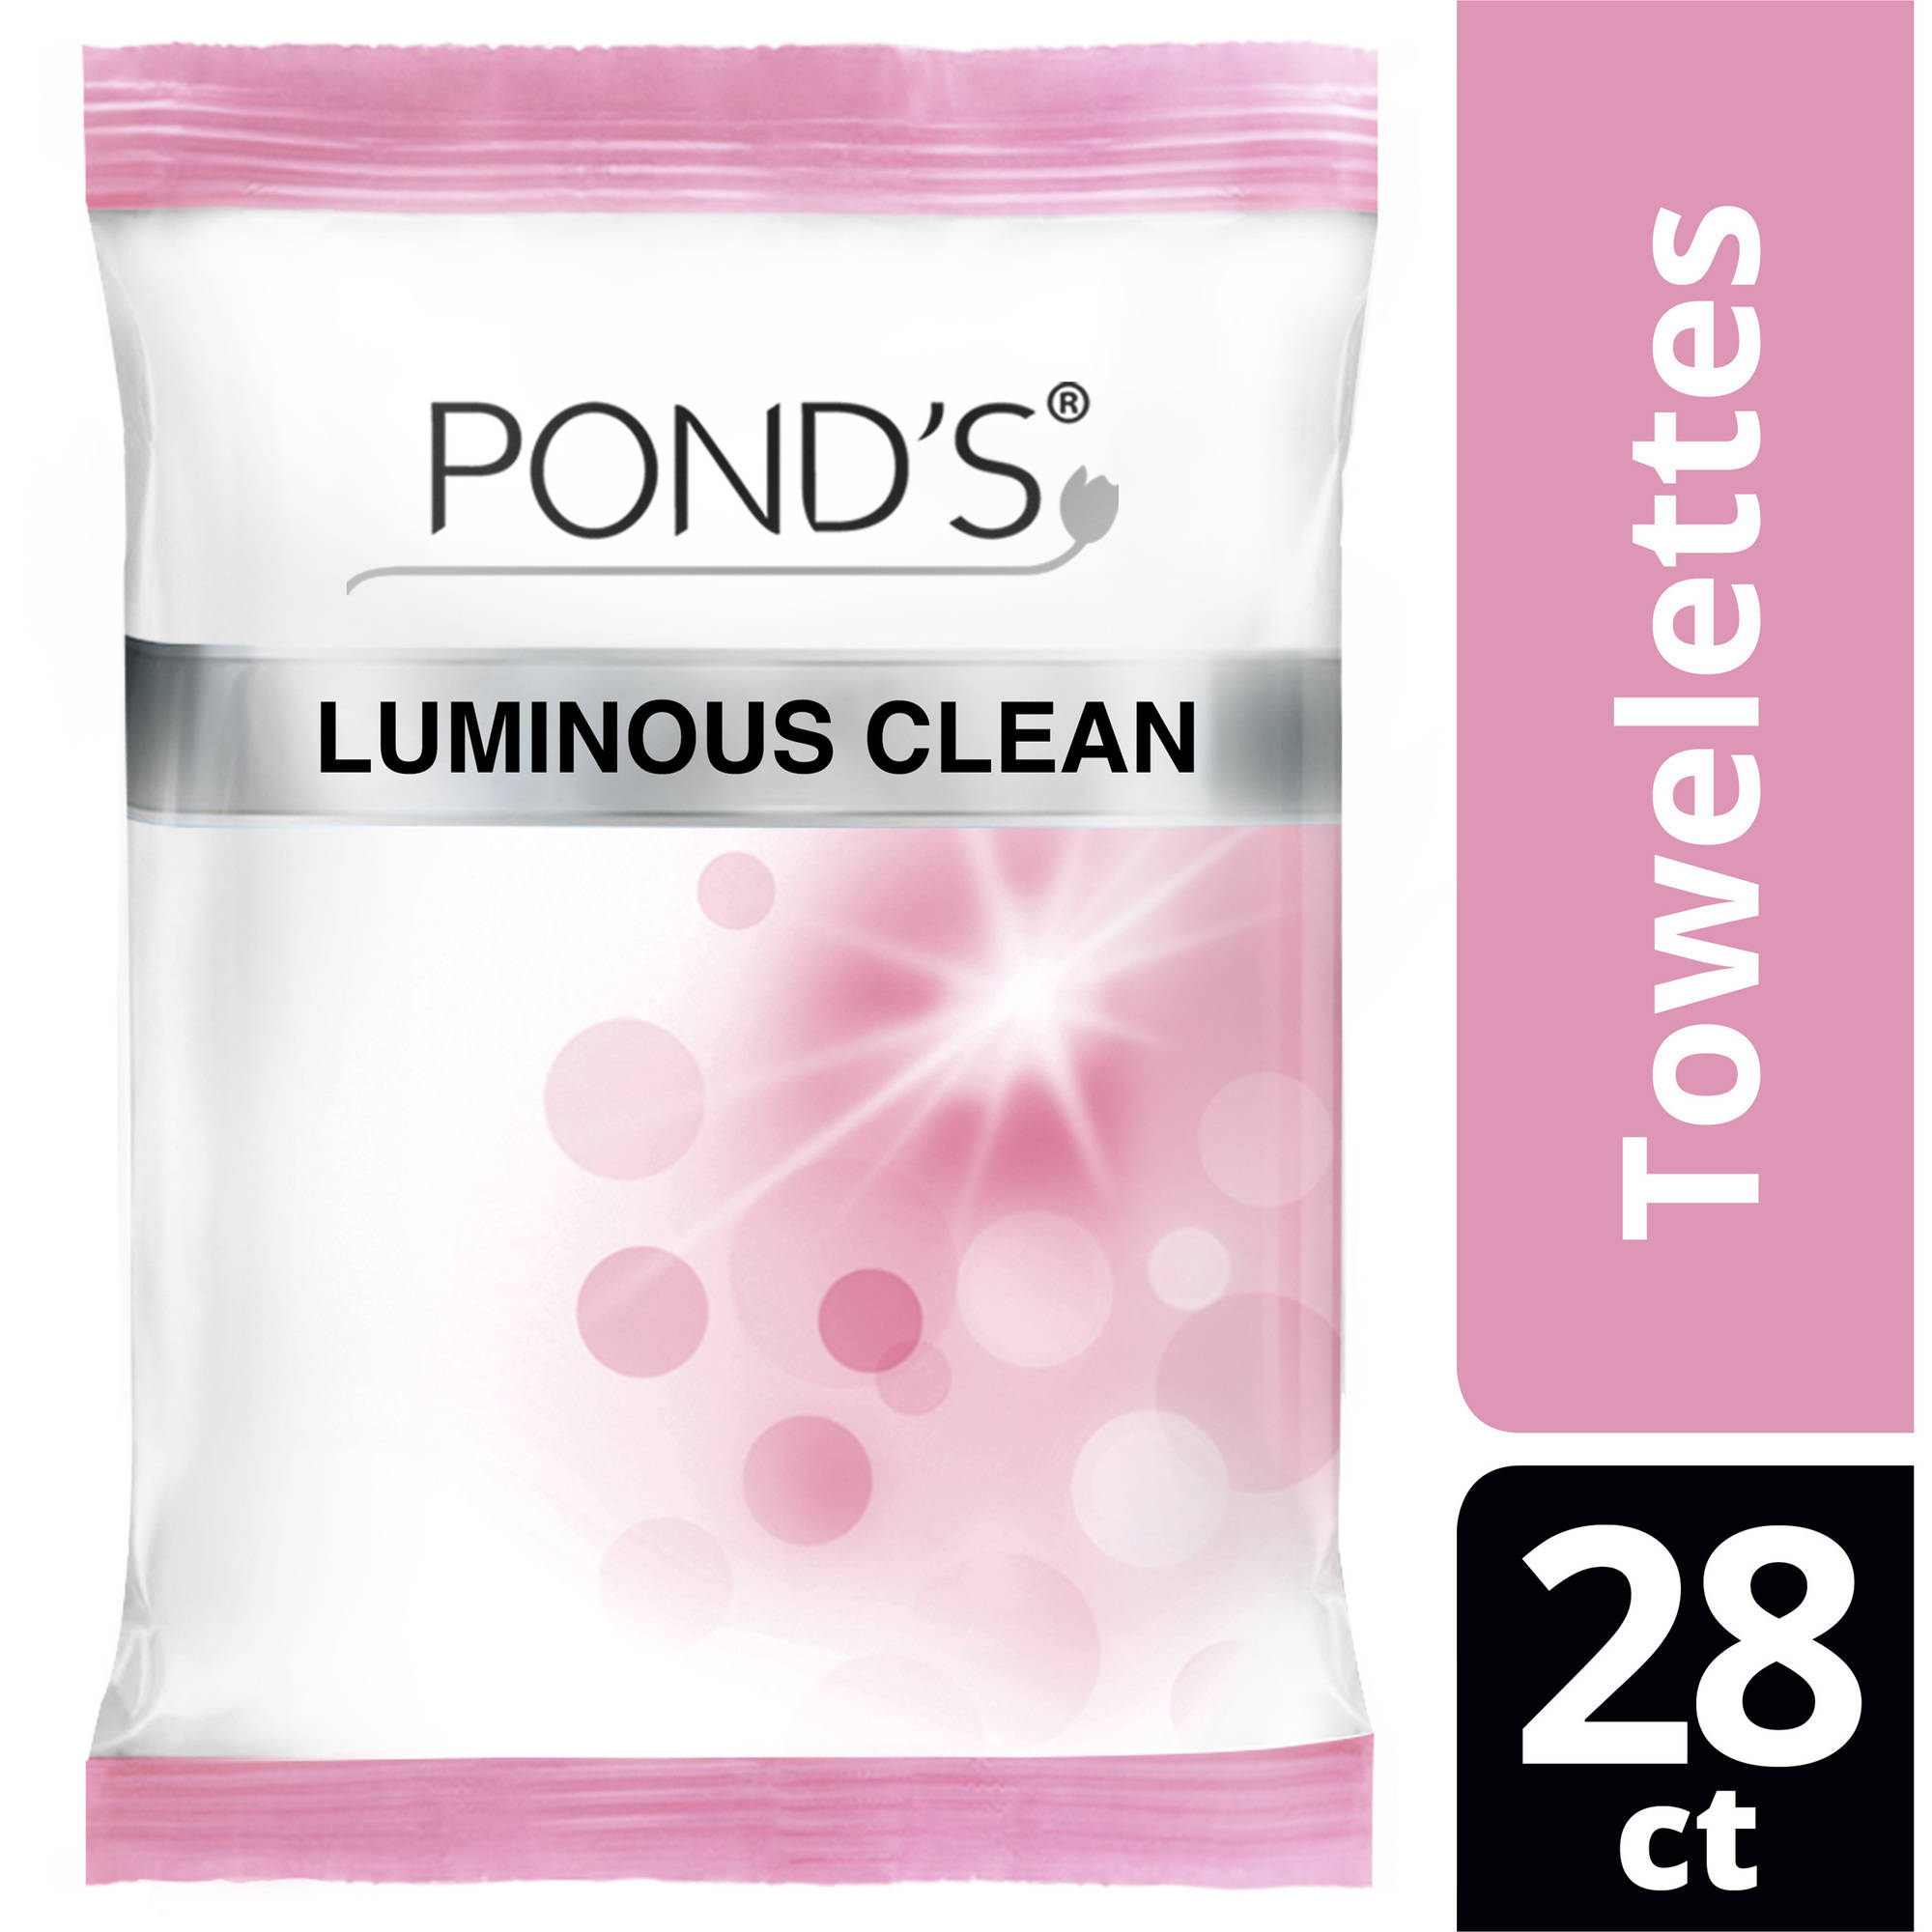 Pond's Luminous Clean Wet Cleansing Towelettes, 30 count